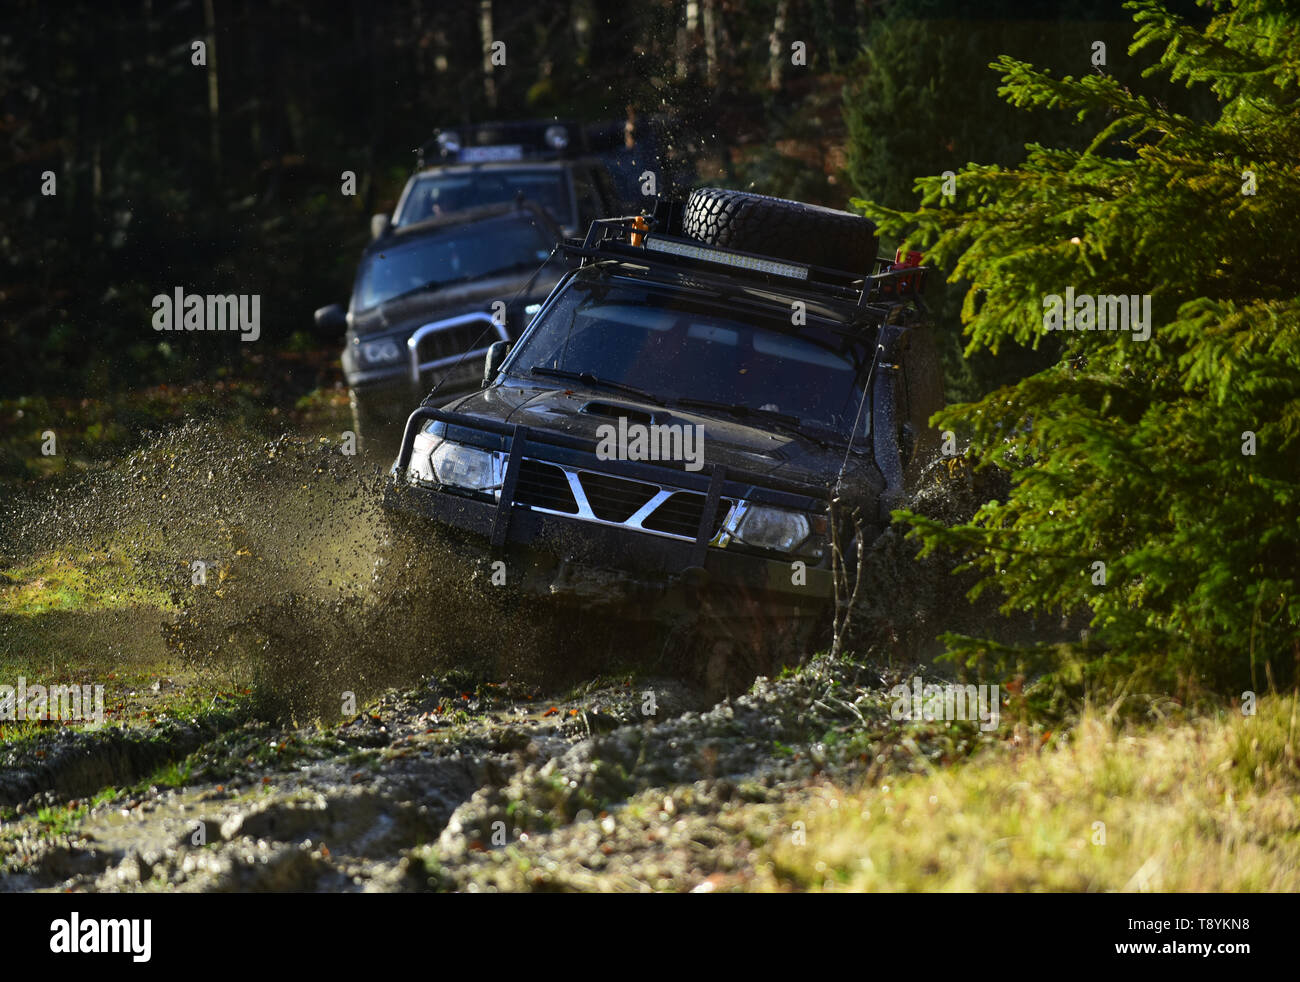 Car racing in autumn forest. Competition, energy and motorsport concept Auto racing on fall nature background. Off road vehicles or SUV overcomes - Stock Image